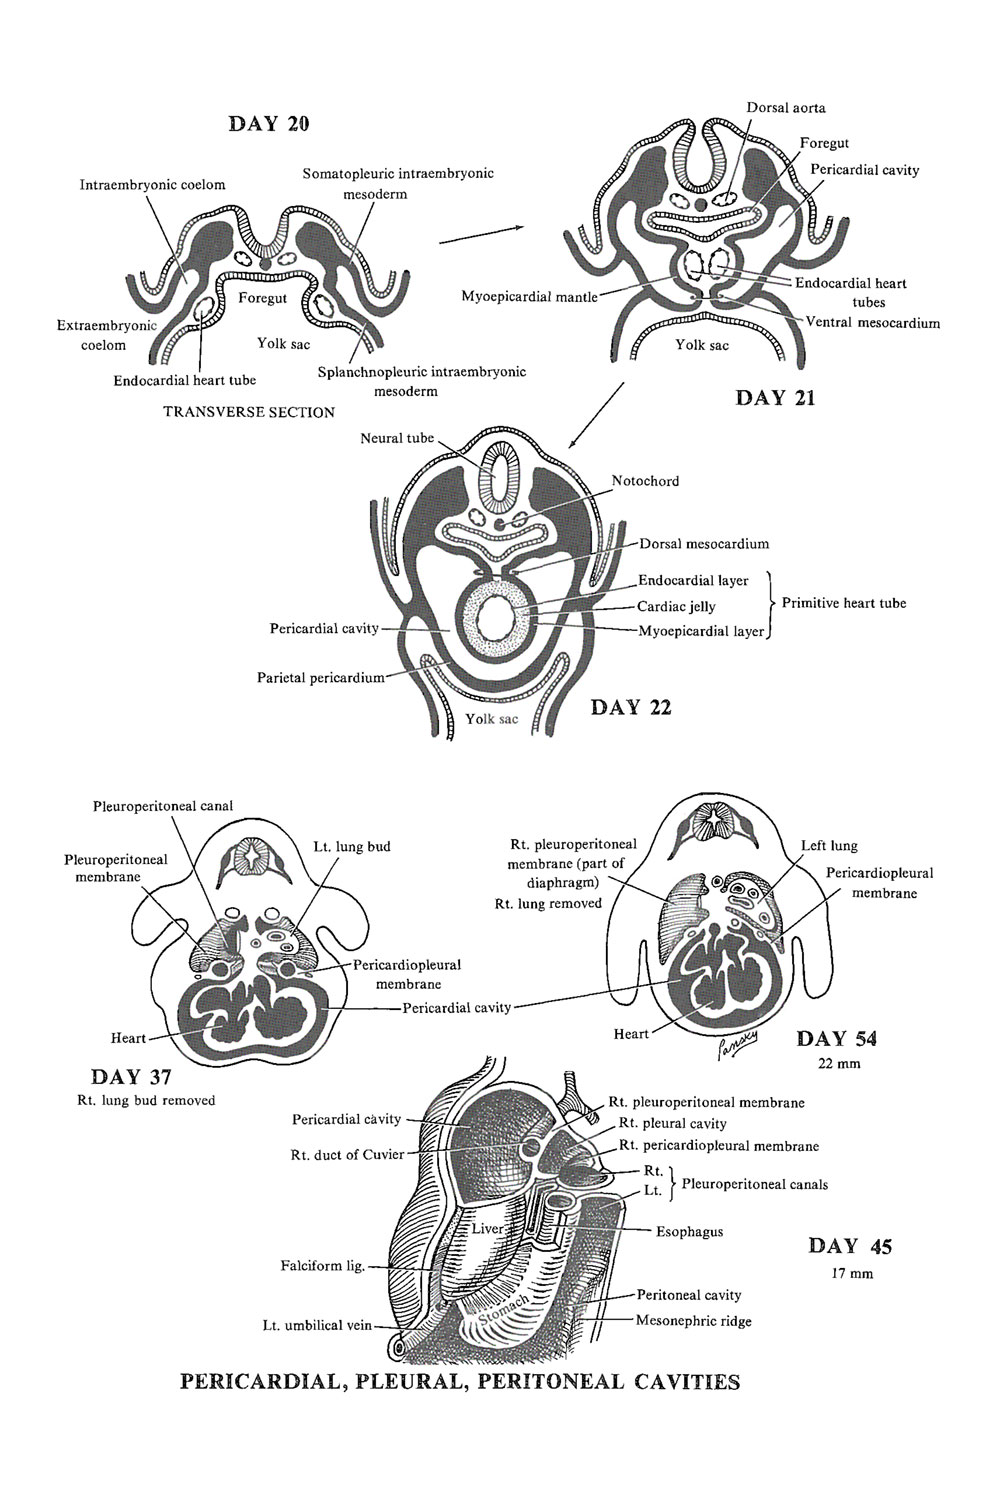 pericardial cavity development and primitive heart circulation: image #1